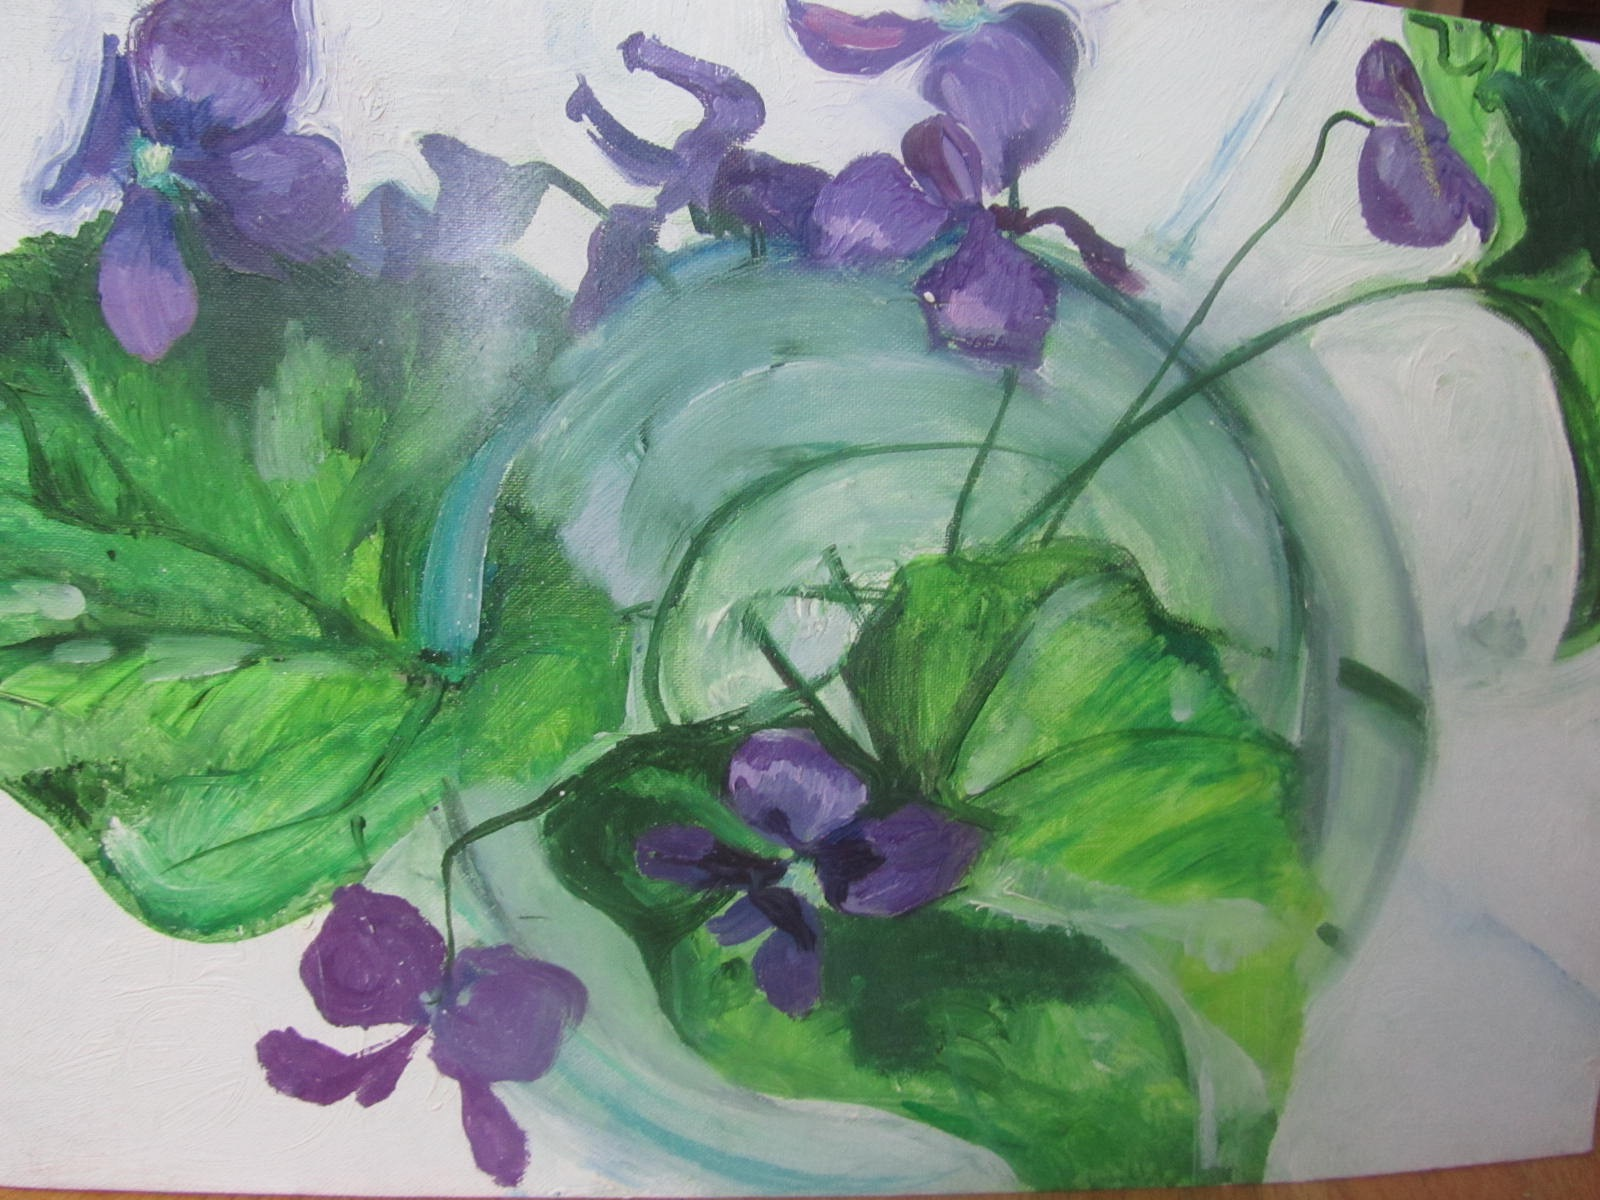 031 'Violets in a Vase'  Oil on Canvas